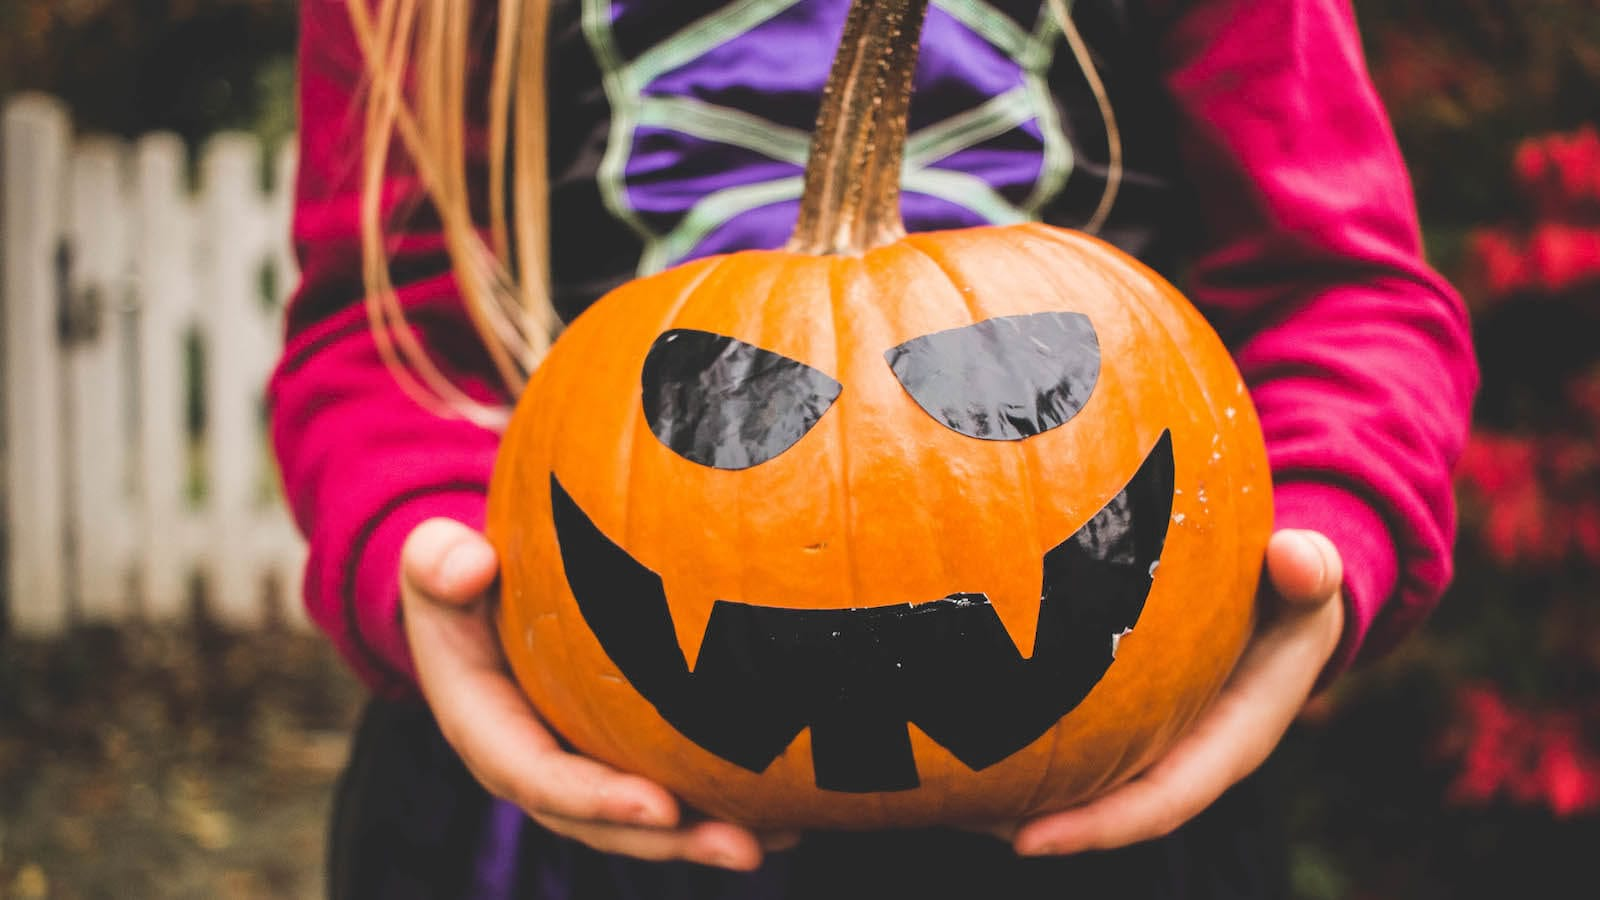 Keepy Blog: What to do with small kids during Halloween. Lots of different activities including handprint skeletons, homemade slime, rainbow pupmpkins and so much more.